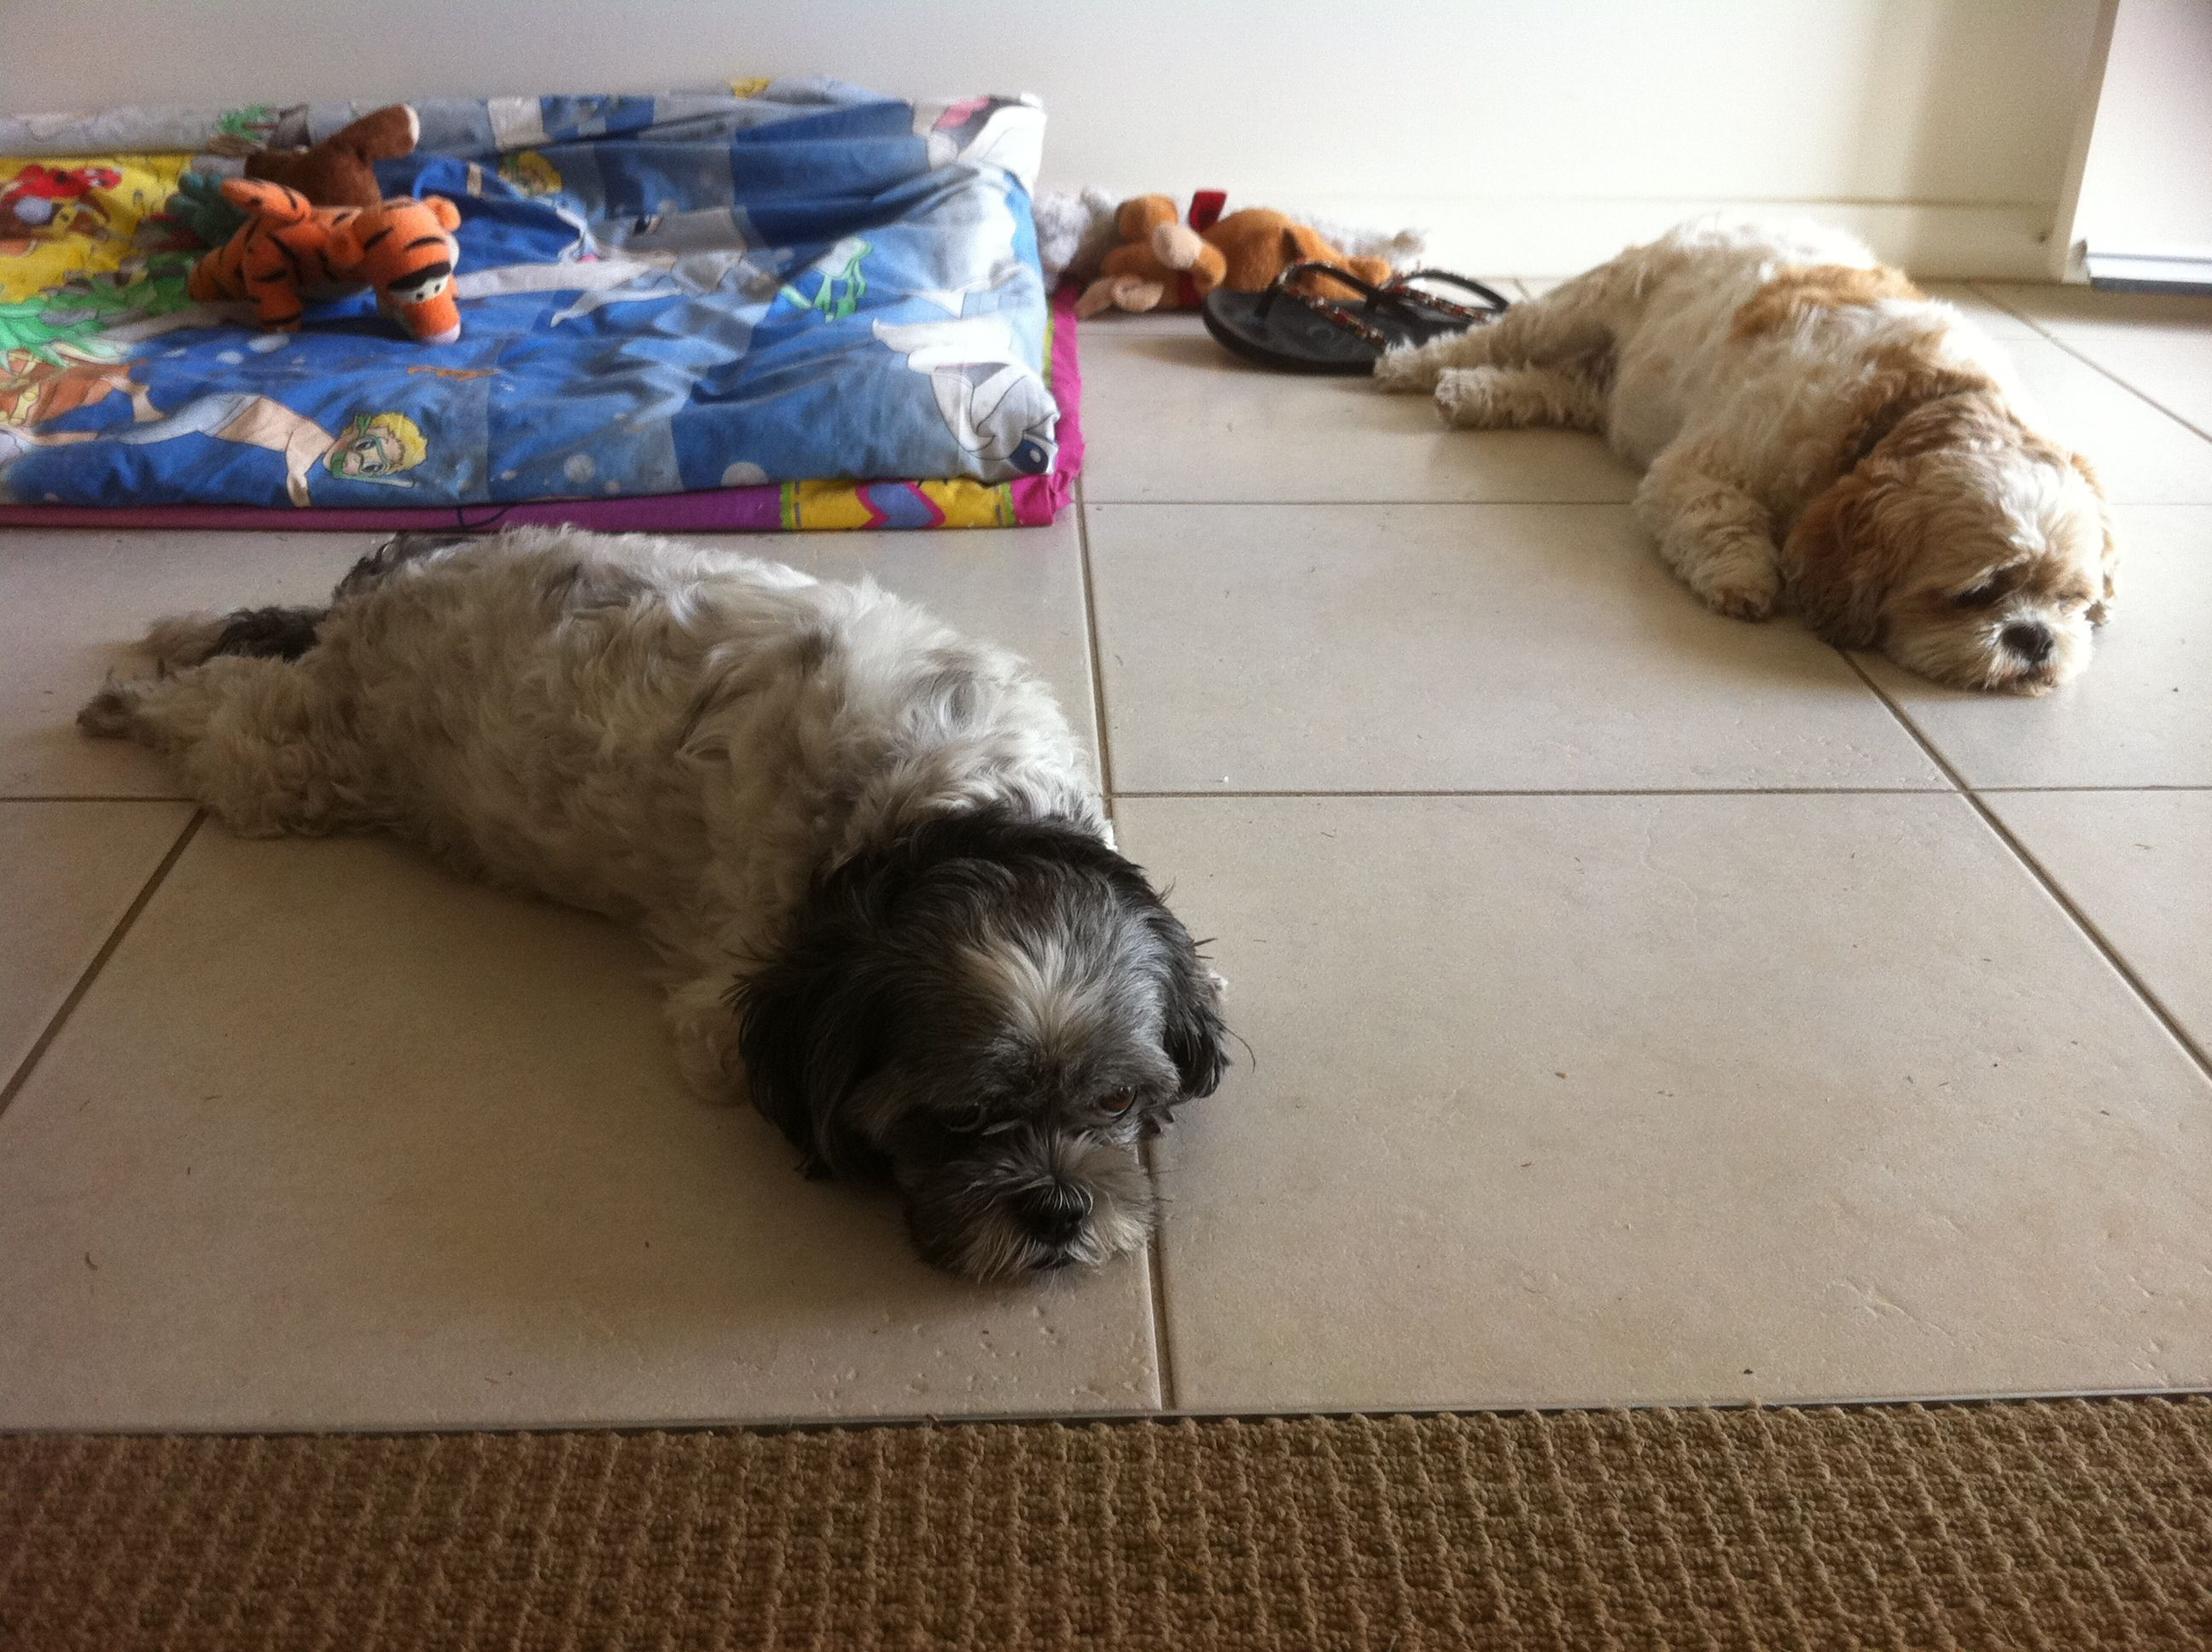 House sitting and Pet sitting can be so much fun. Here is a story of one of our favourite experiences.  http://www.totalhousesitters.com/1/post/2012/12/the-fun-of-pet-sitting-and-dog-sitting.html